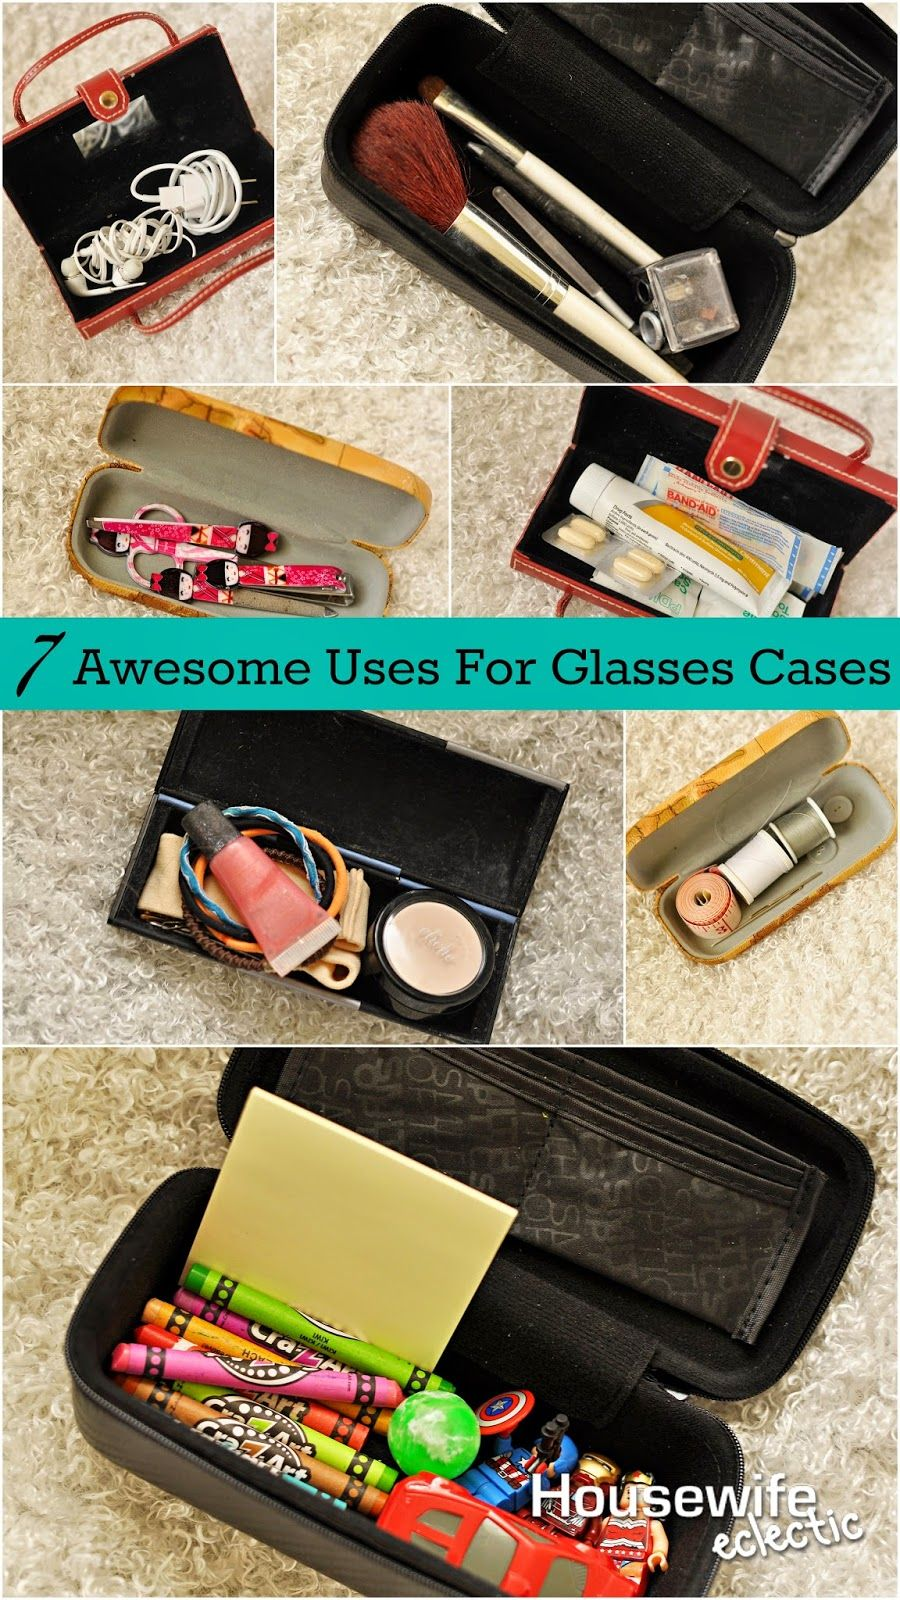 a08533b6c729 7 Awesome Uses For Glasses Cases | DIY Ideas | Glasses case, Glasses ...